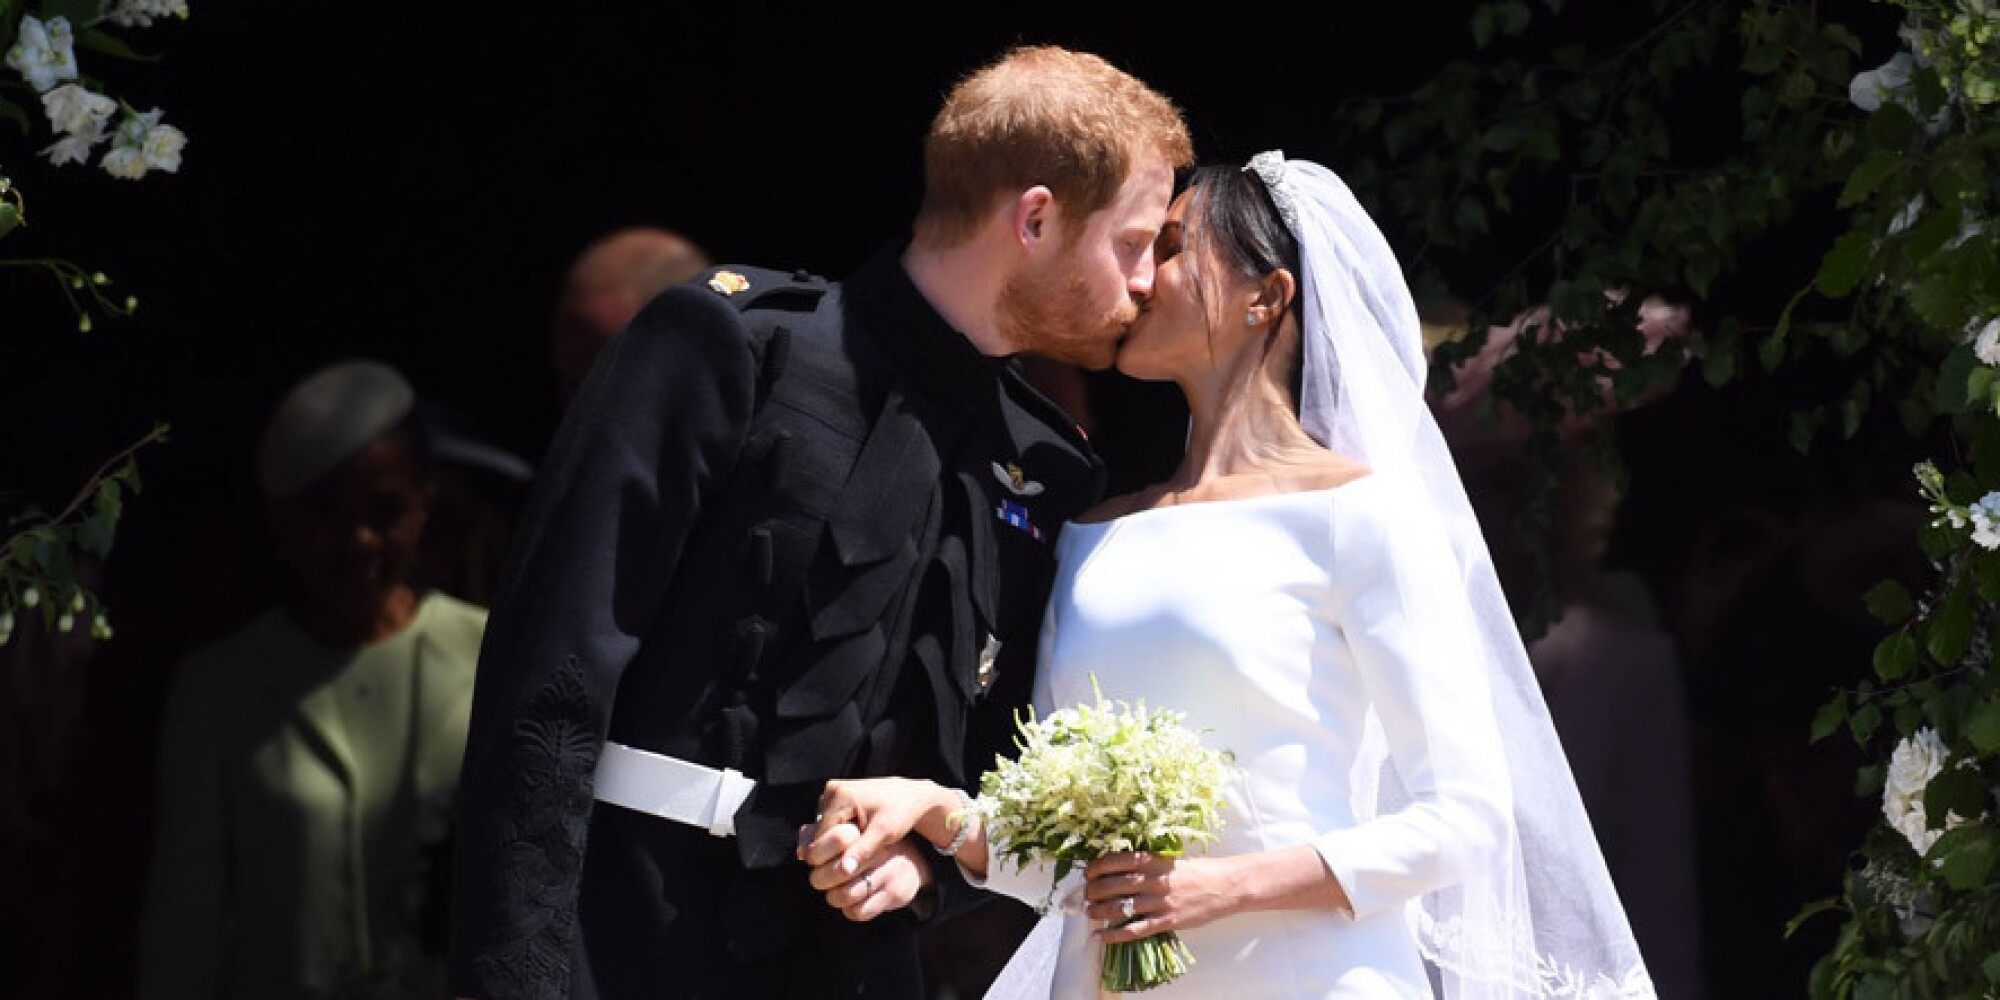 Prince Harry and Meghan Markle are wed amid pomp and pageantry at